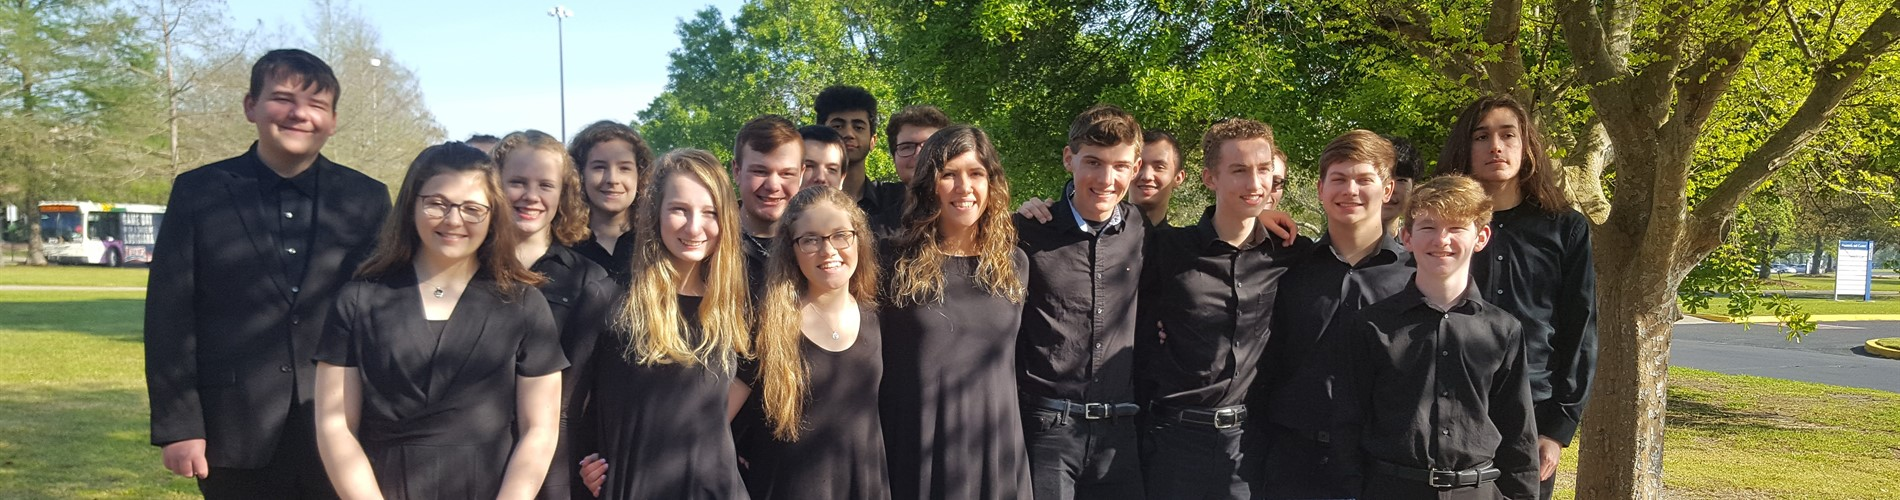 group picture of Oldham County Jazz band